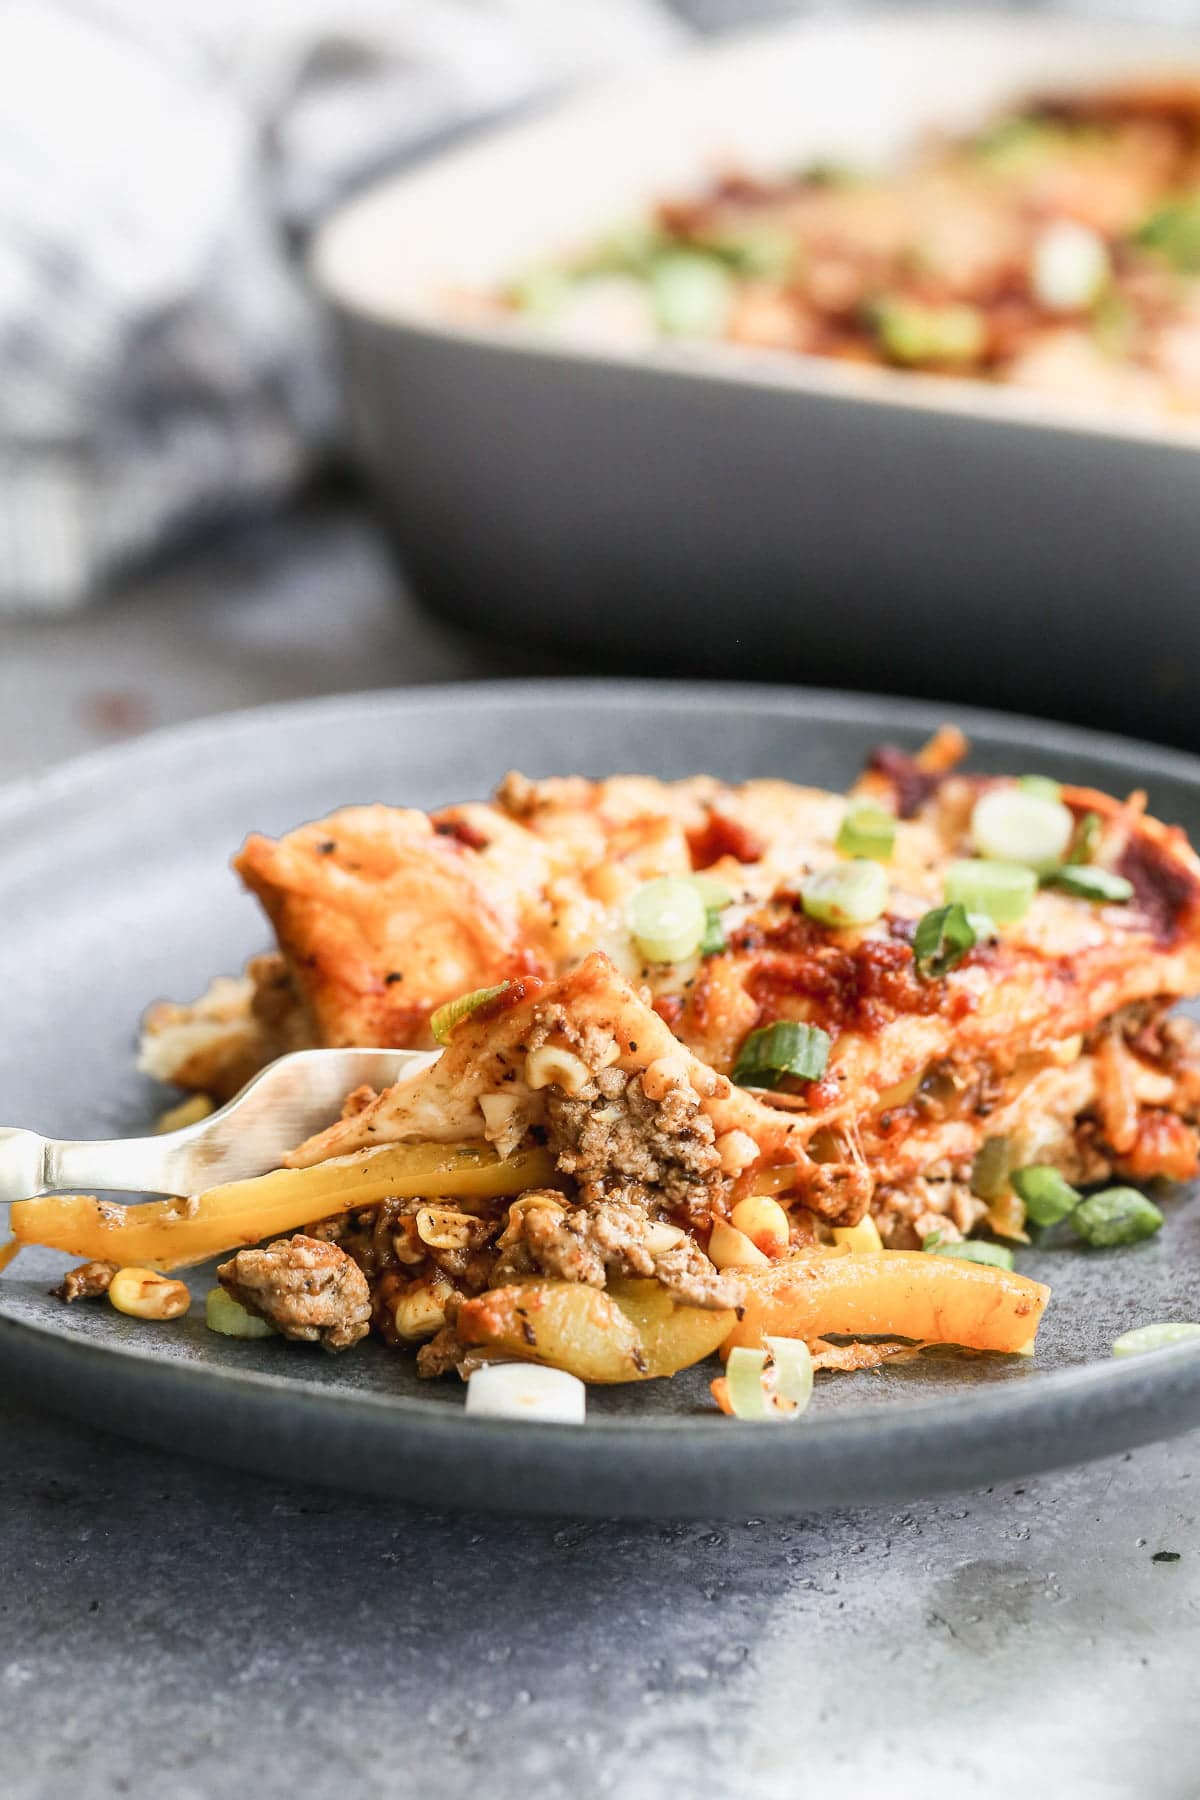 Packed with ground chicken or turkey, plenty of veggies, and an easy homemade enchilada sauce, our Chicken Enchilada Casserole is the perfect way to get your enchilada fix in an easier form. Make a day in advance and pop in the oven when you're ready to eat.